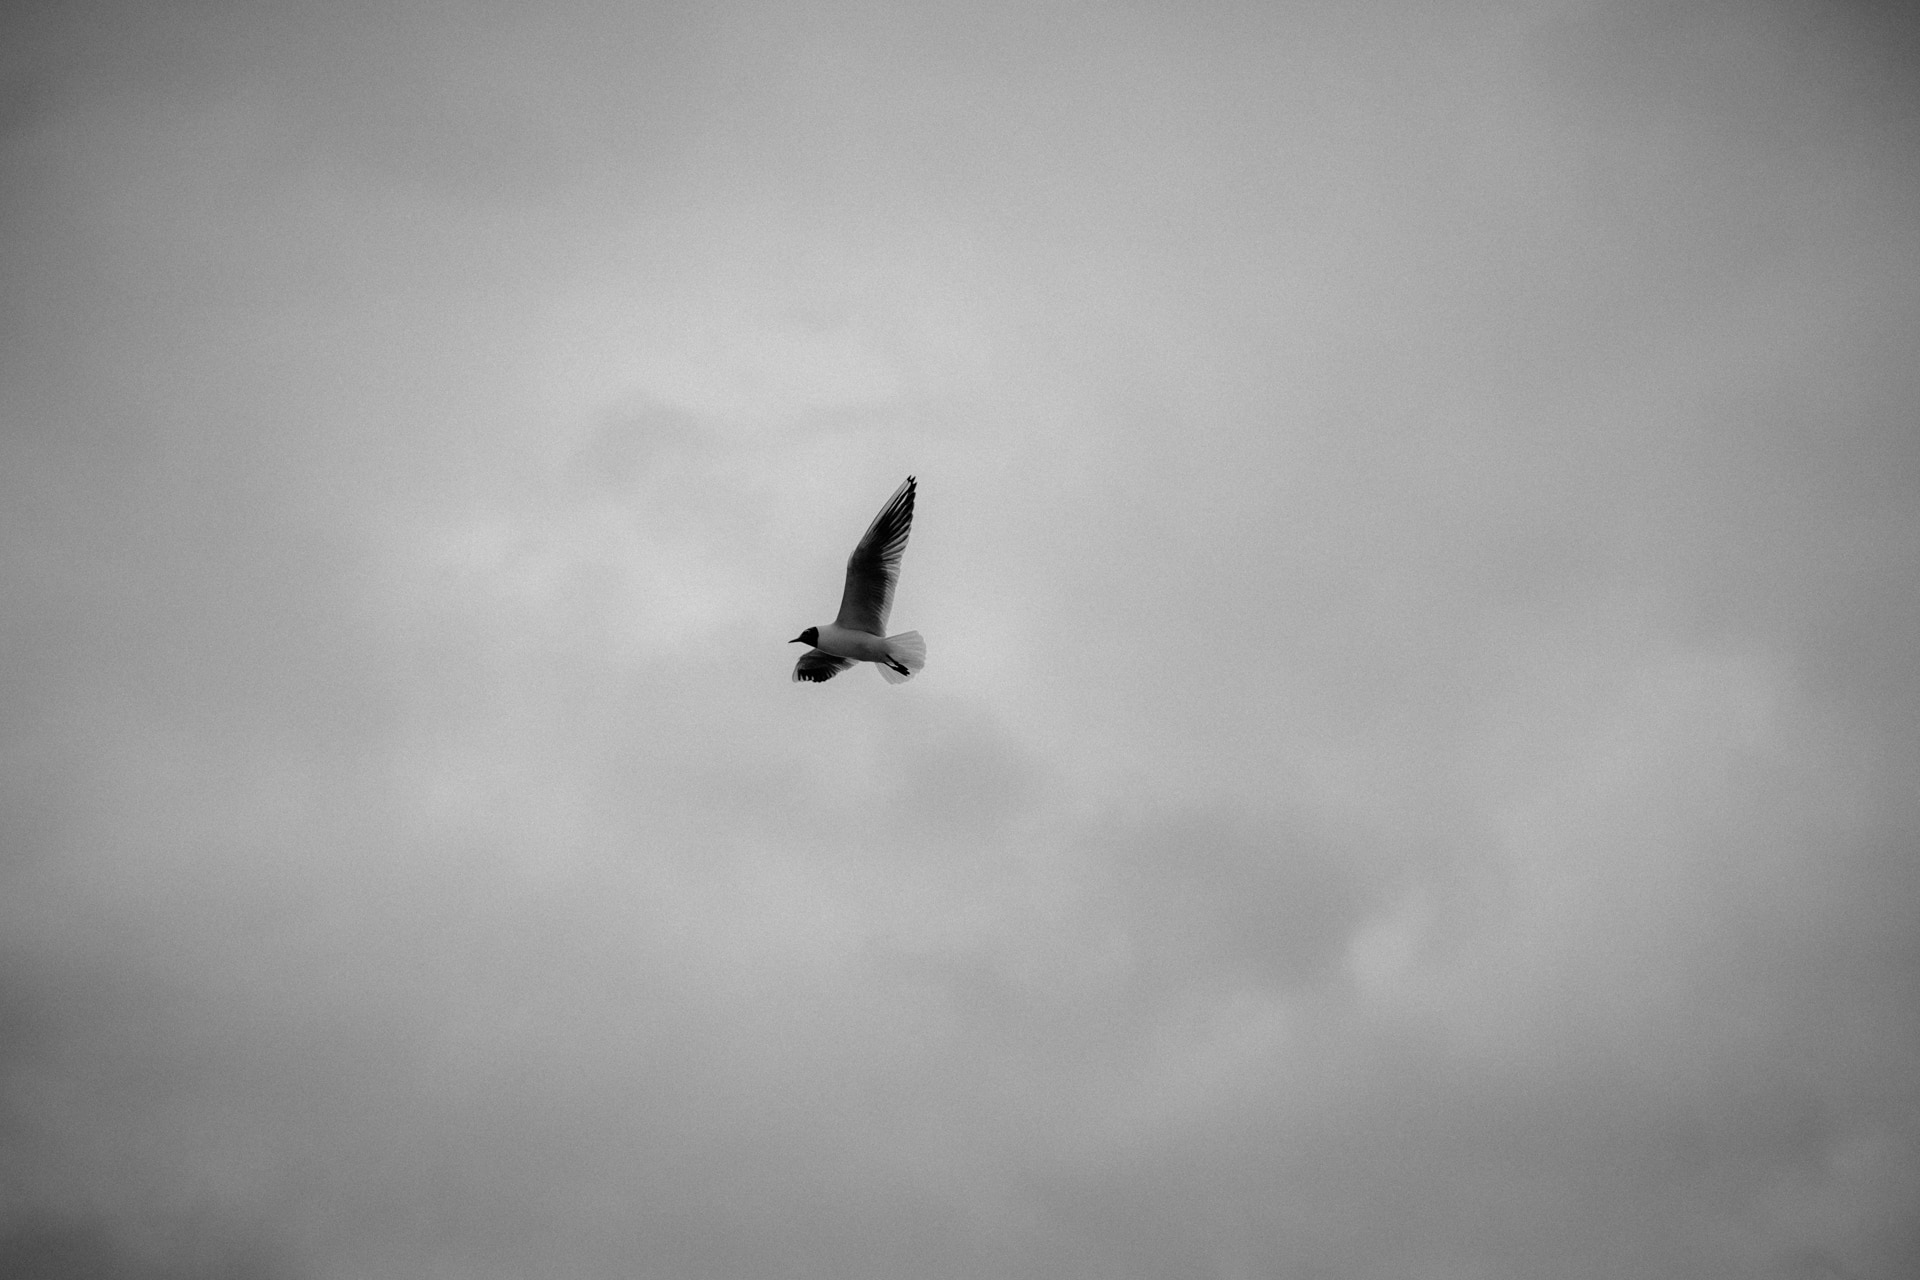 A seagull is flying through the sky.